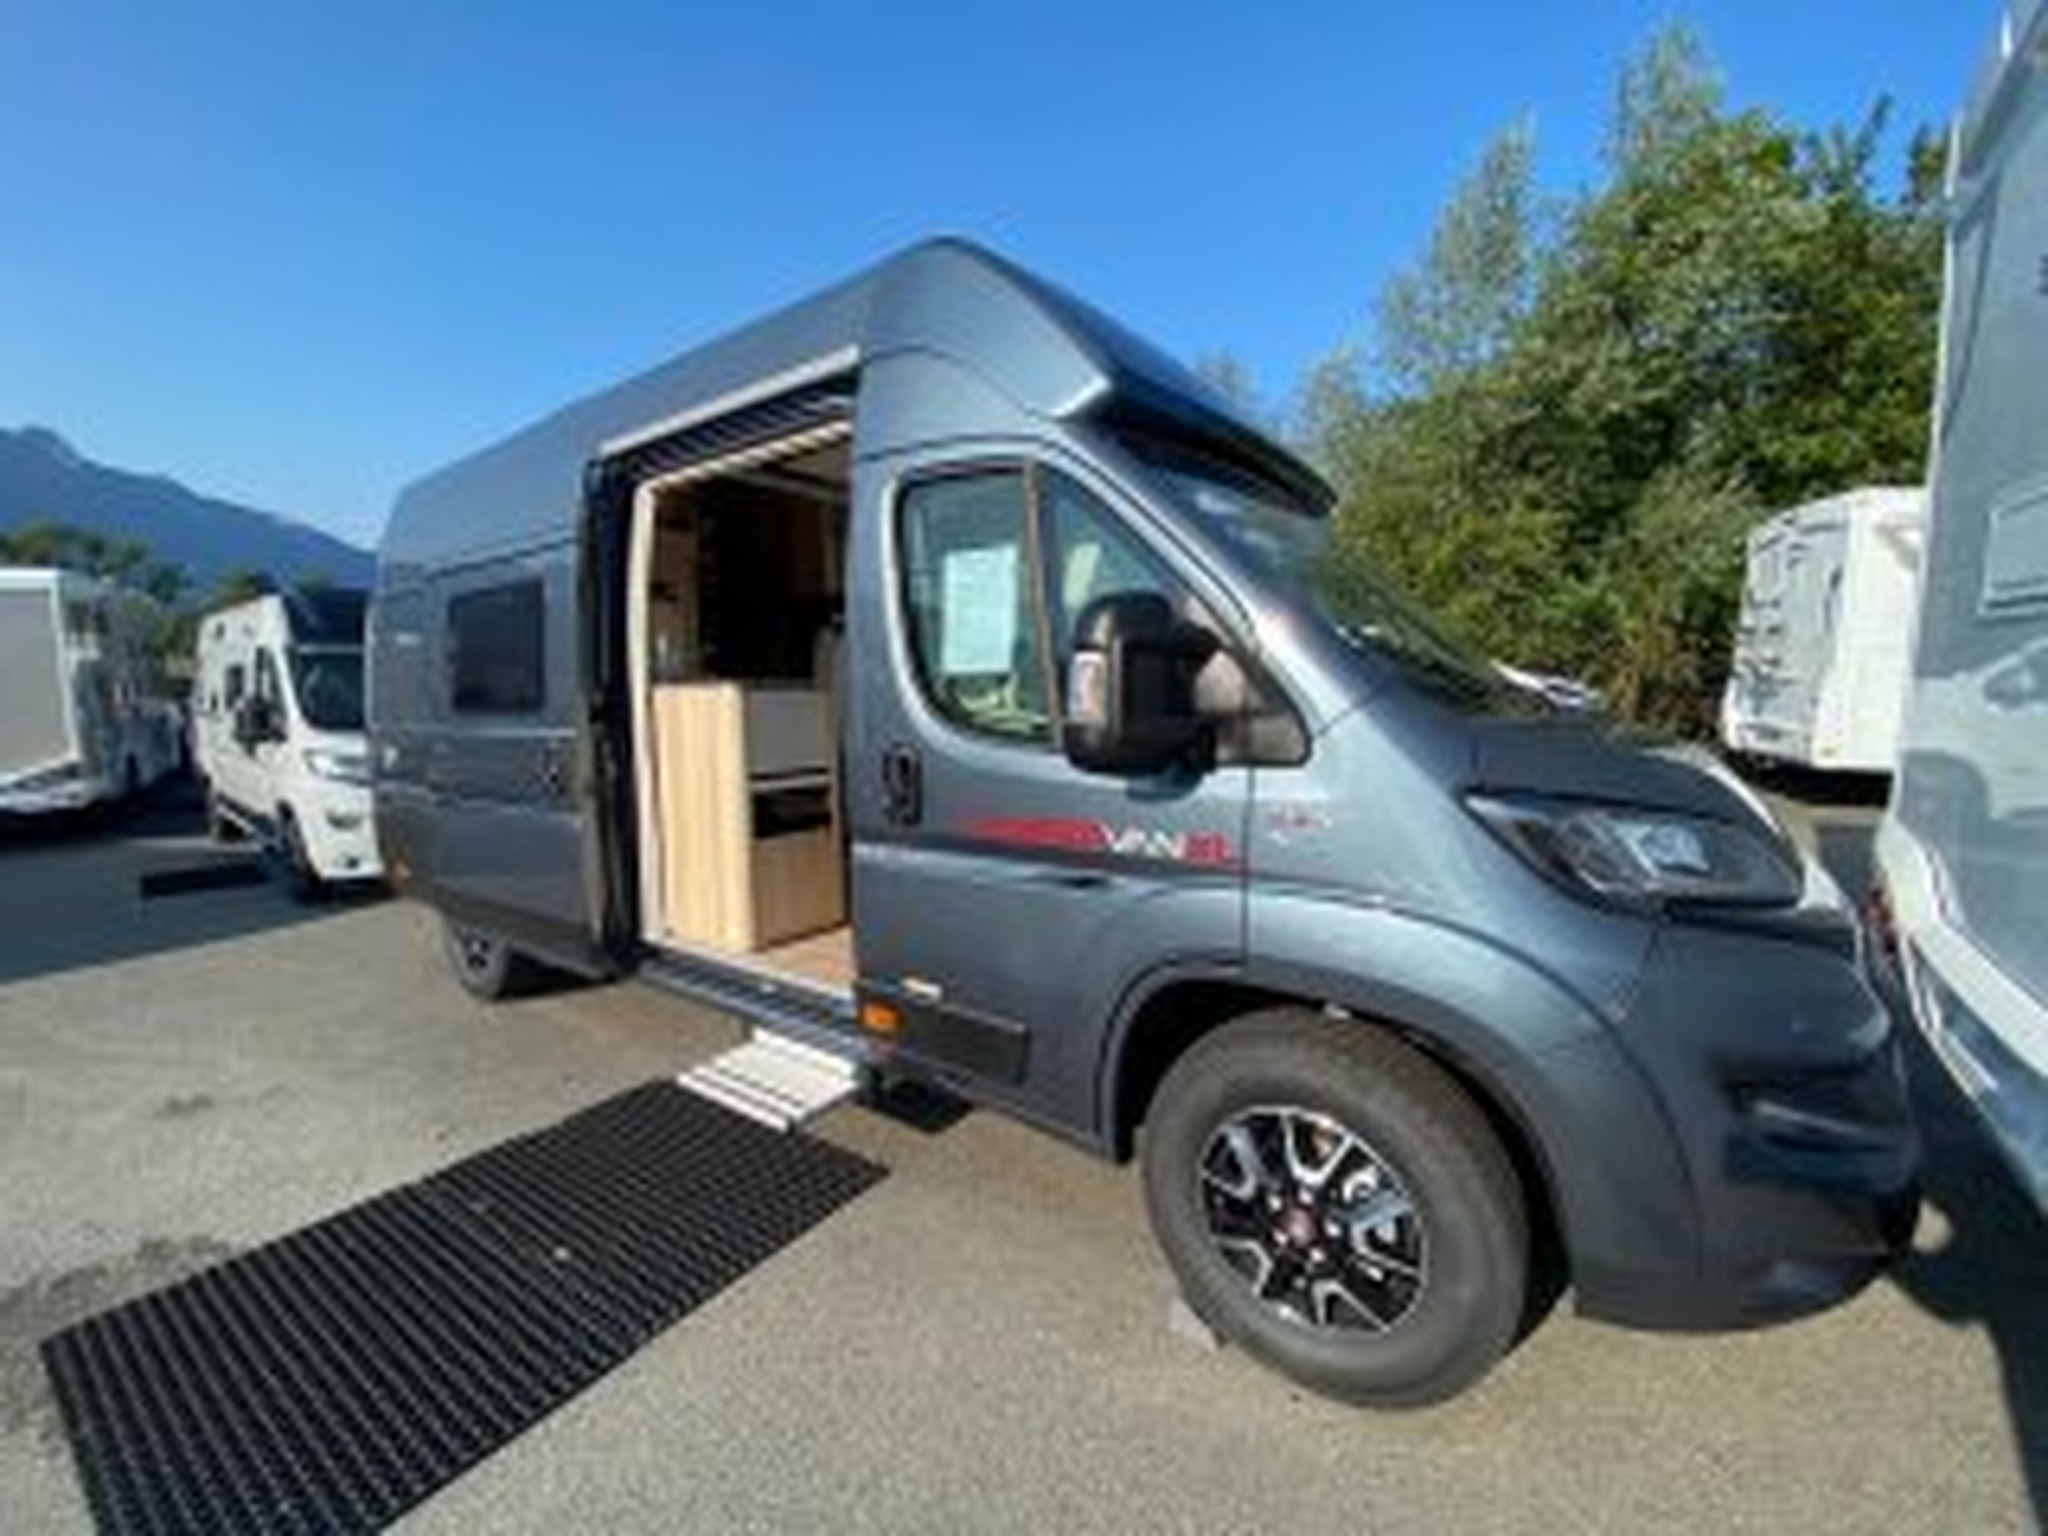 Camping-car CAMPEREVE Camper Van Xl